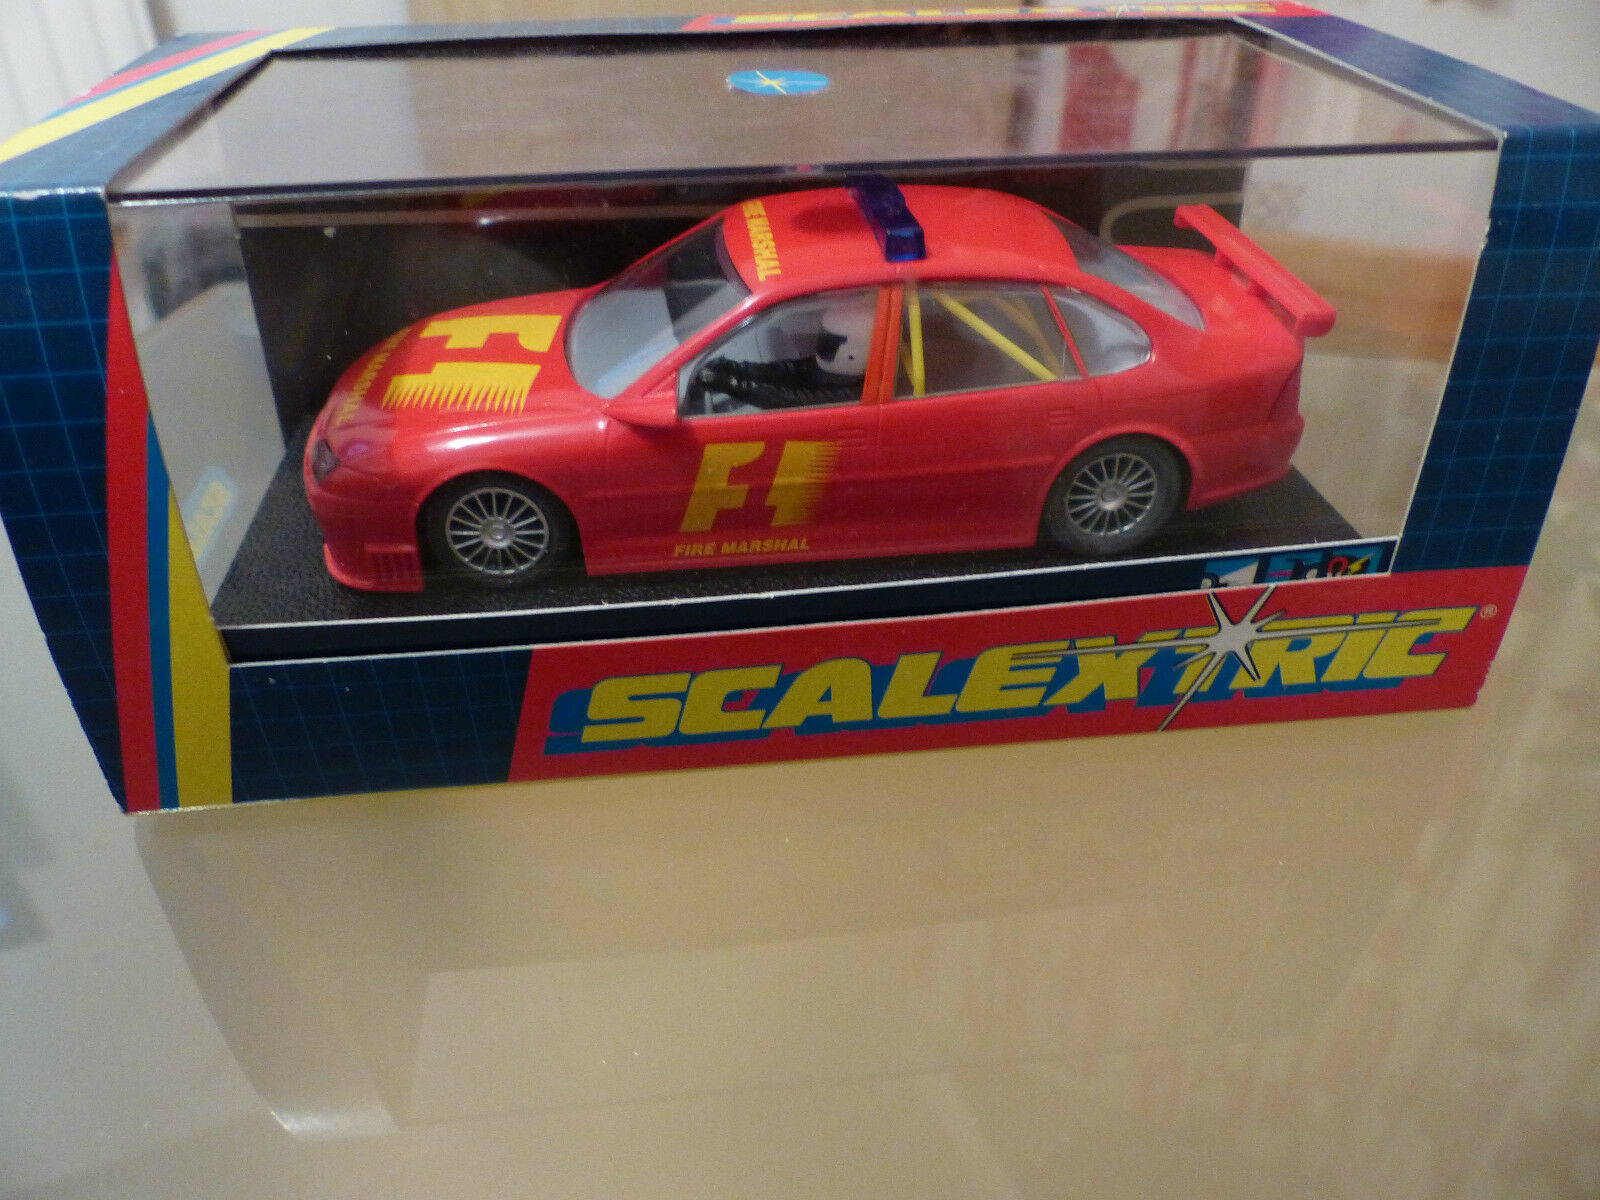 Scalextric VECTRA F1 Fire Marshal C2195 Rouge